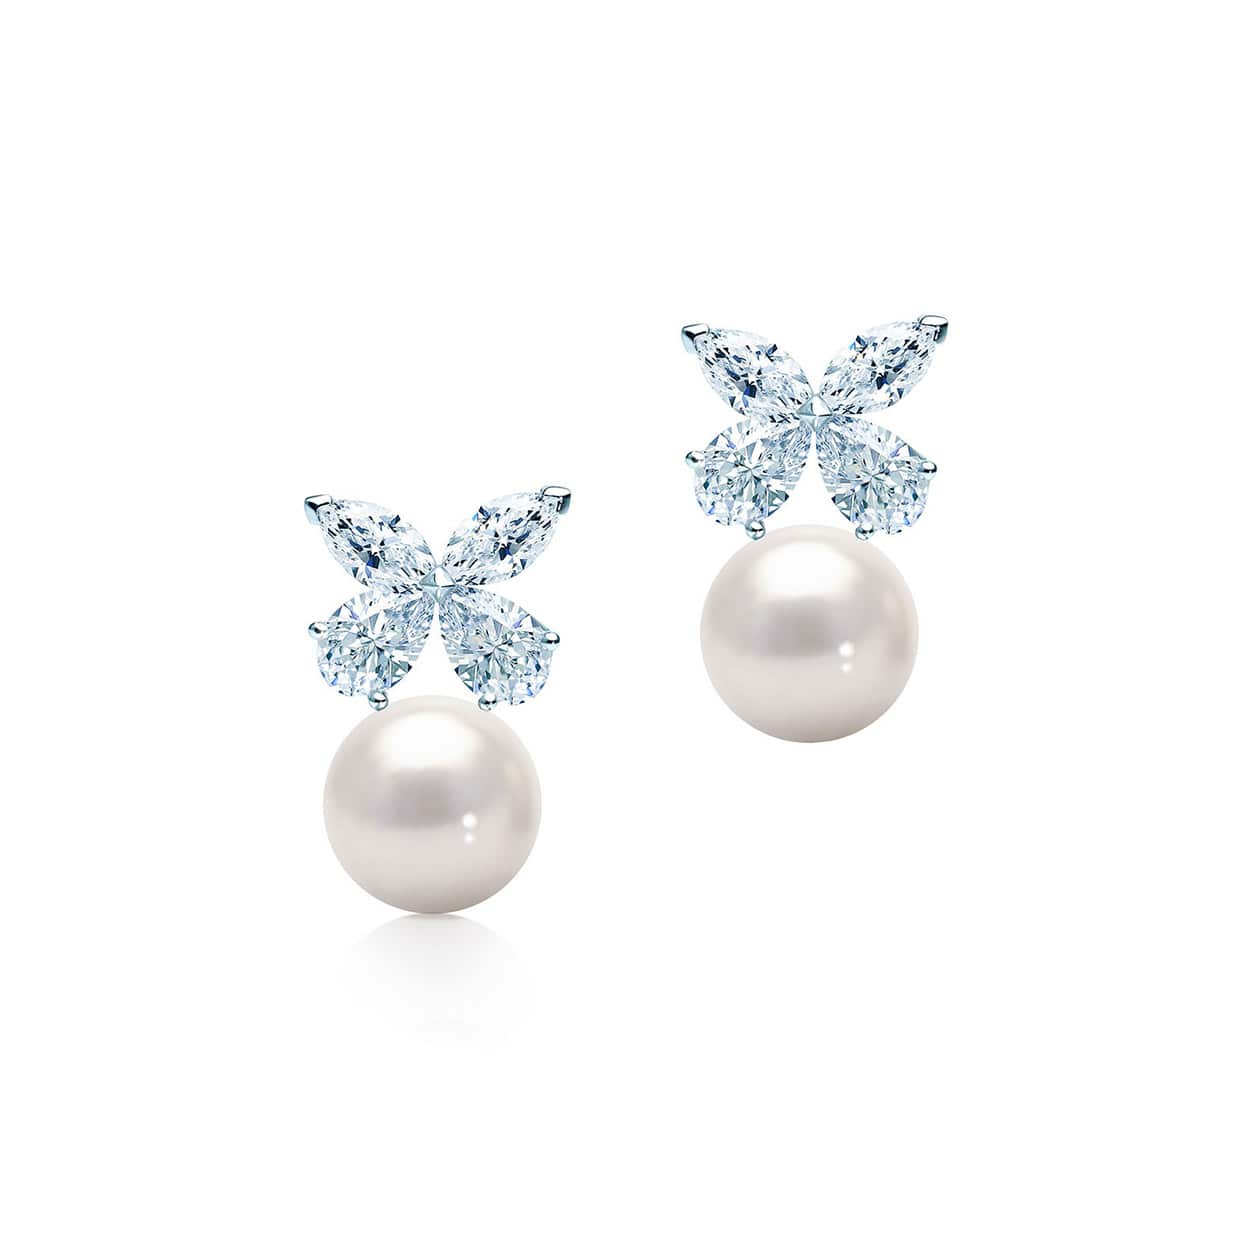 Flora Silver Marquise & Pear Cut Freshwater Pearl Earrings - Abelstedt